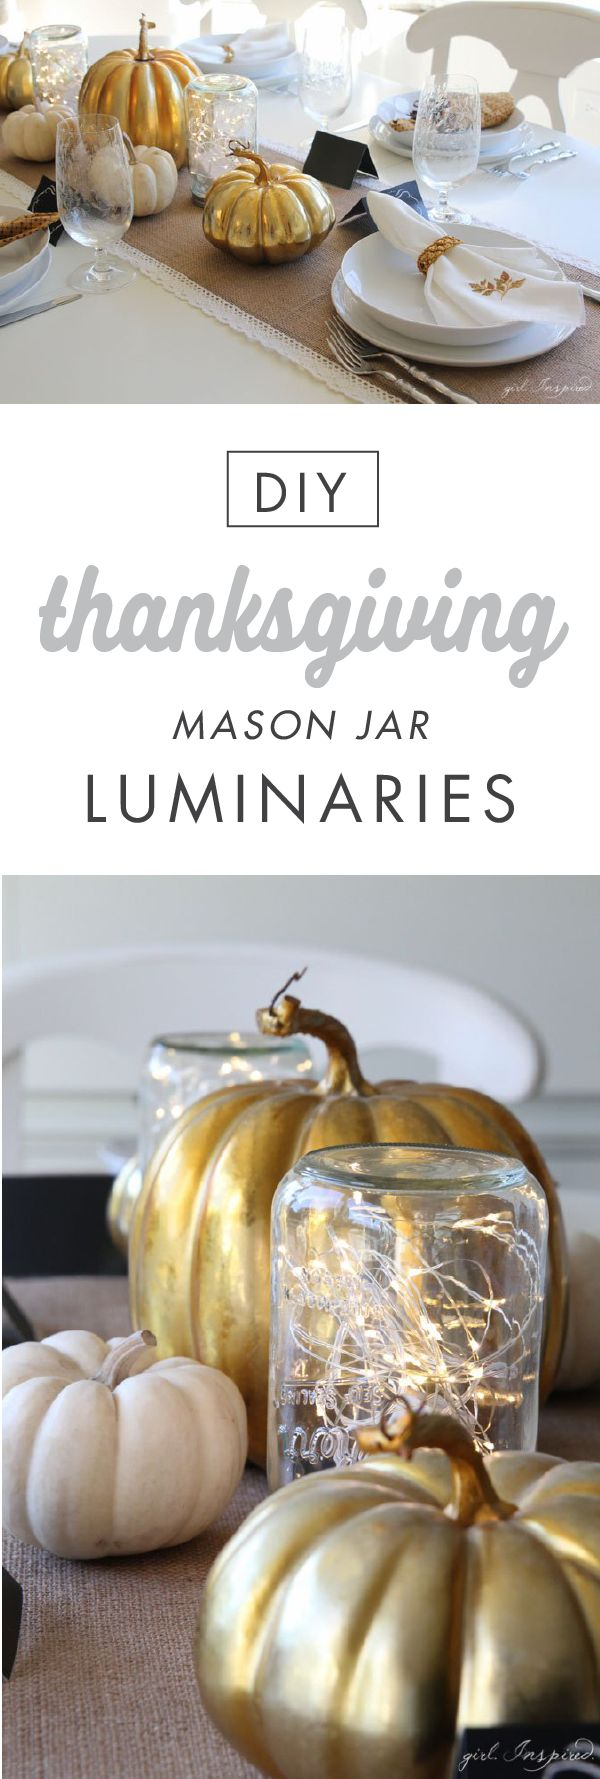 Illuminate your Thanksgiving table with help from Jo-Ann's. This easy craft  project includes